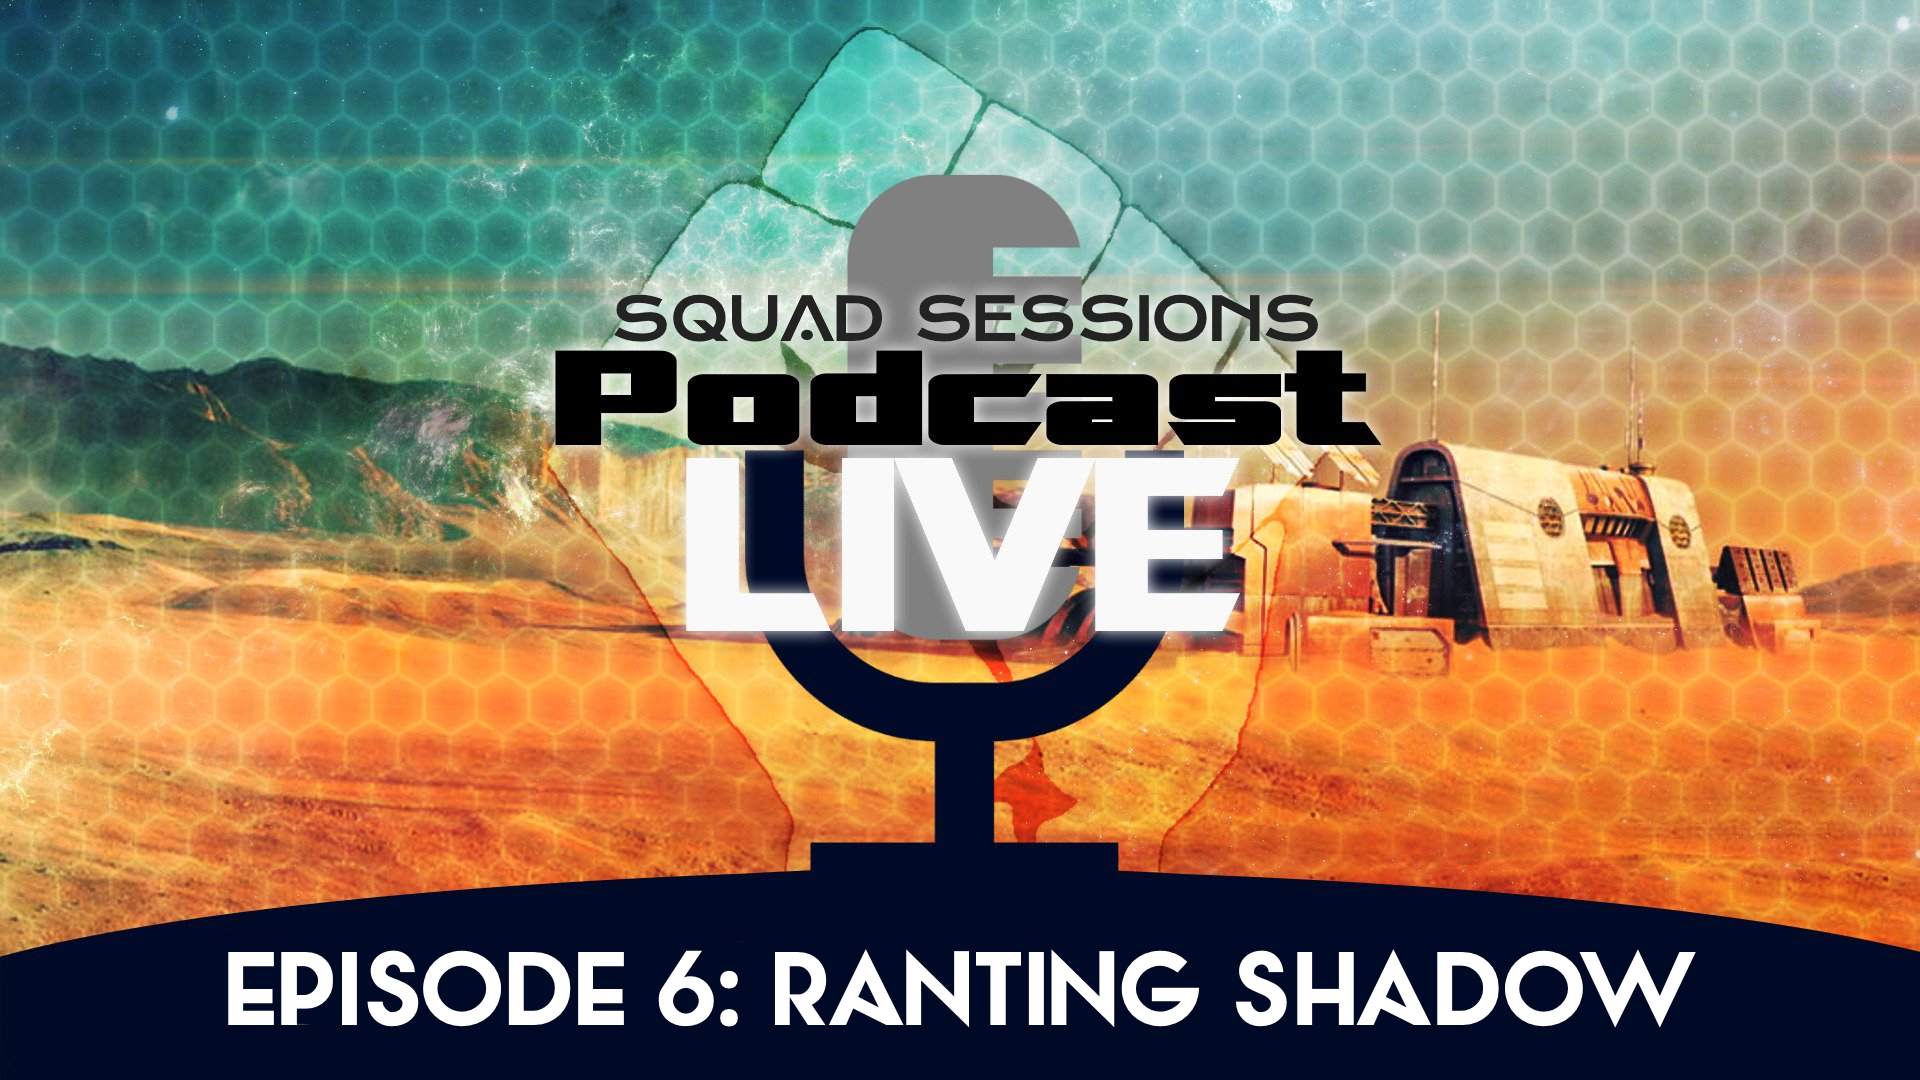 Squad Sessions Podcast Live – Episode 6: Ranting Shadow (Audio Only)